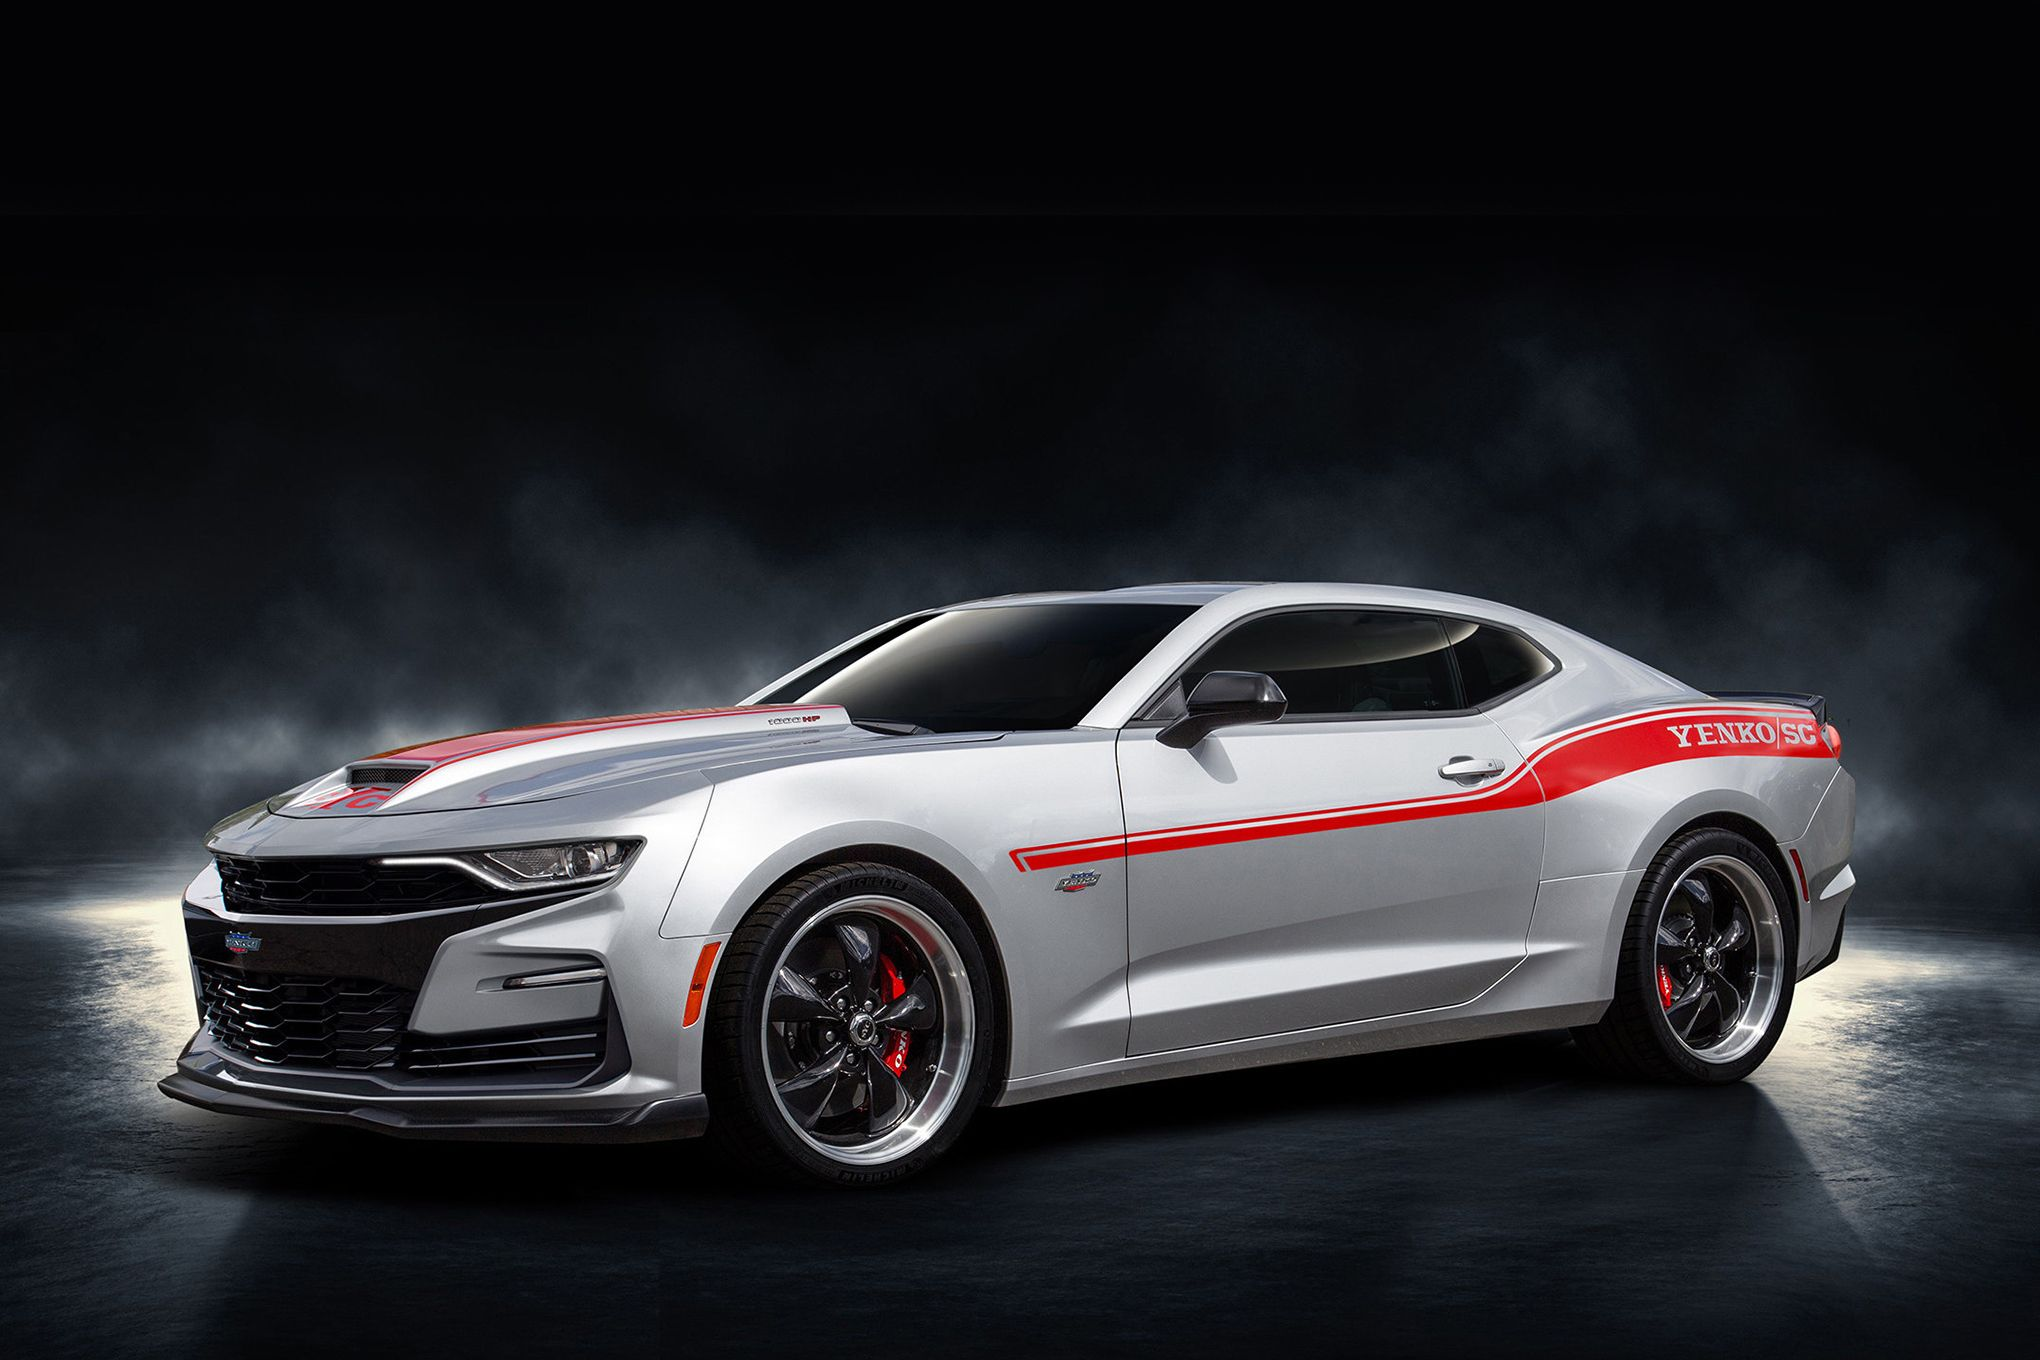 2019 Yenko Stage Ii Camaro Is Out For Dodge Demon Blood